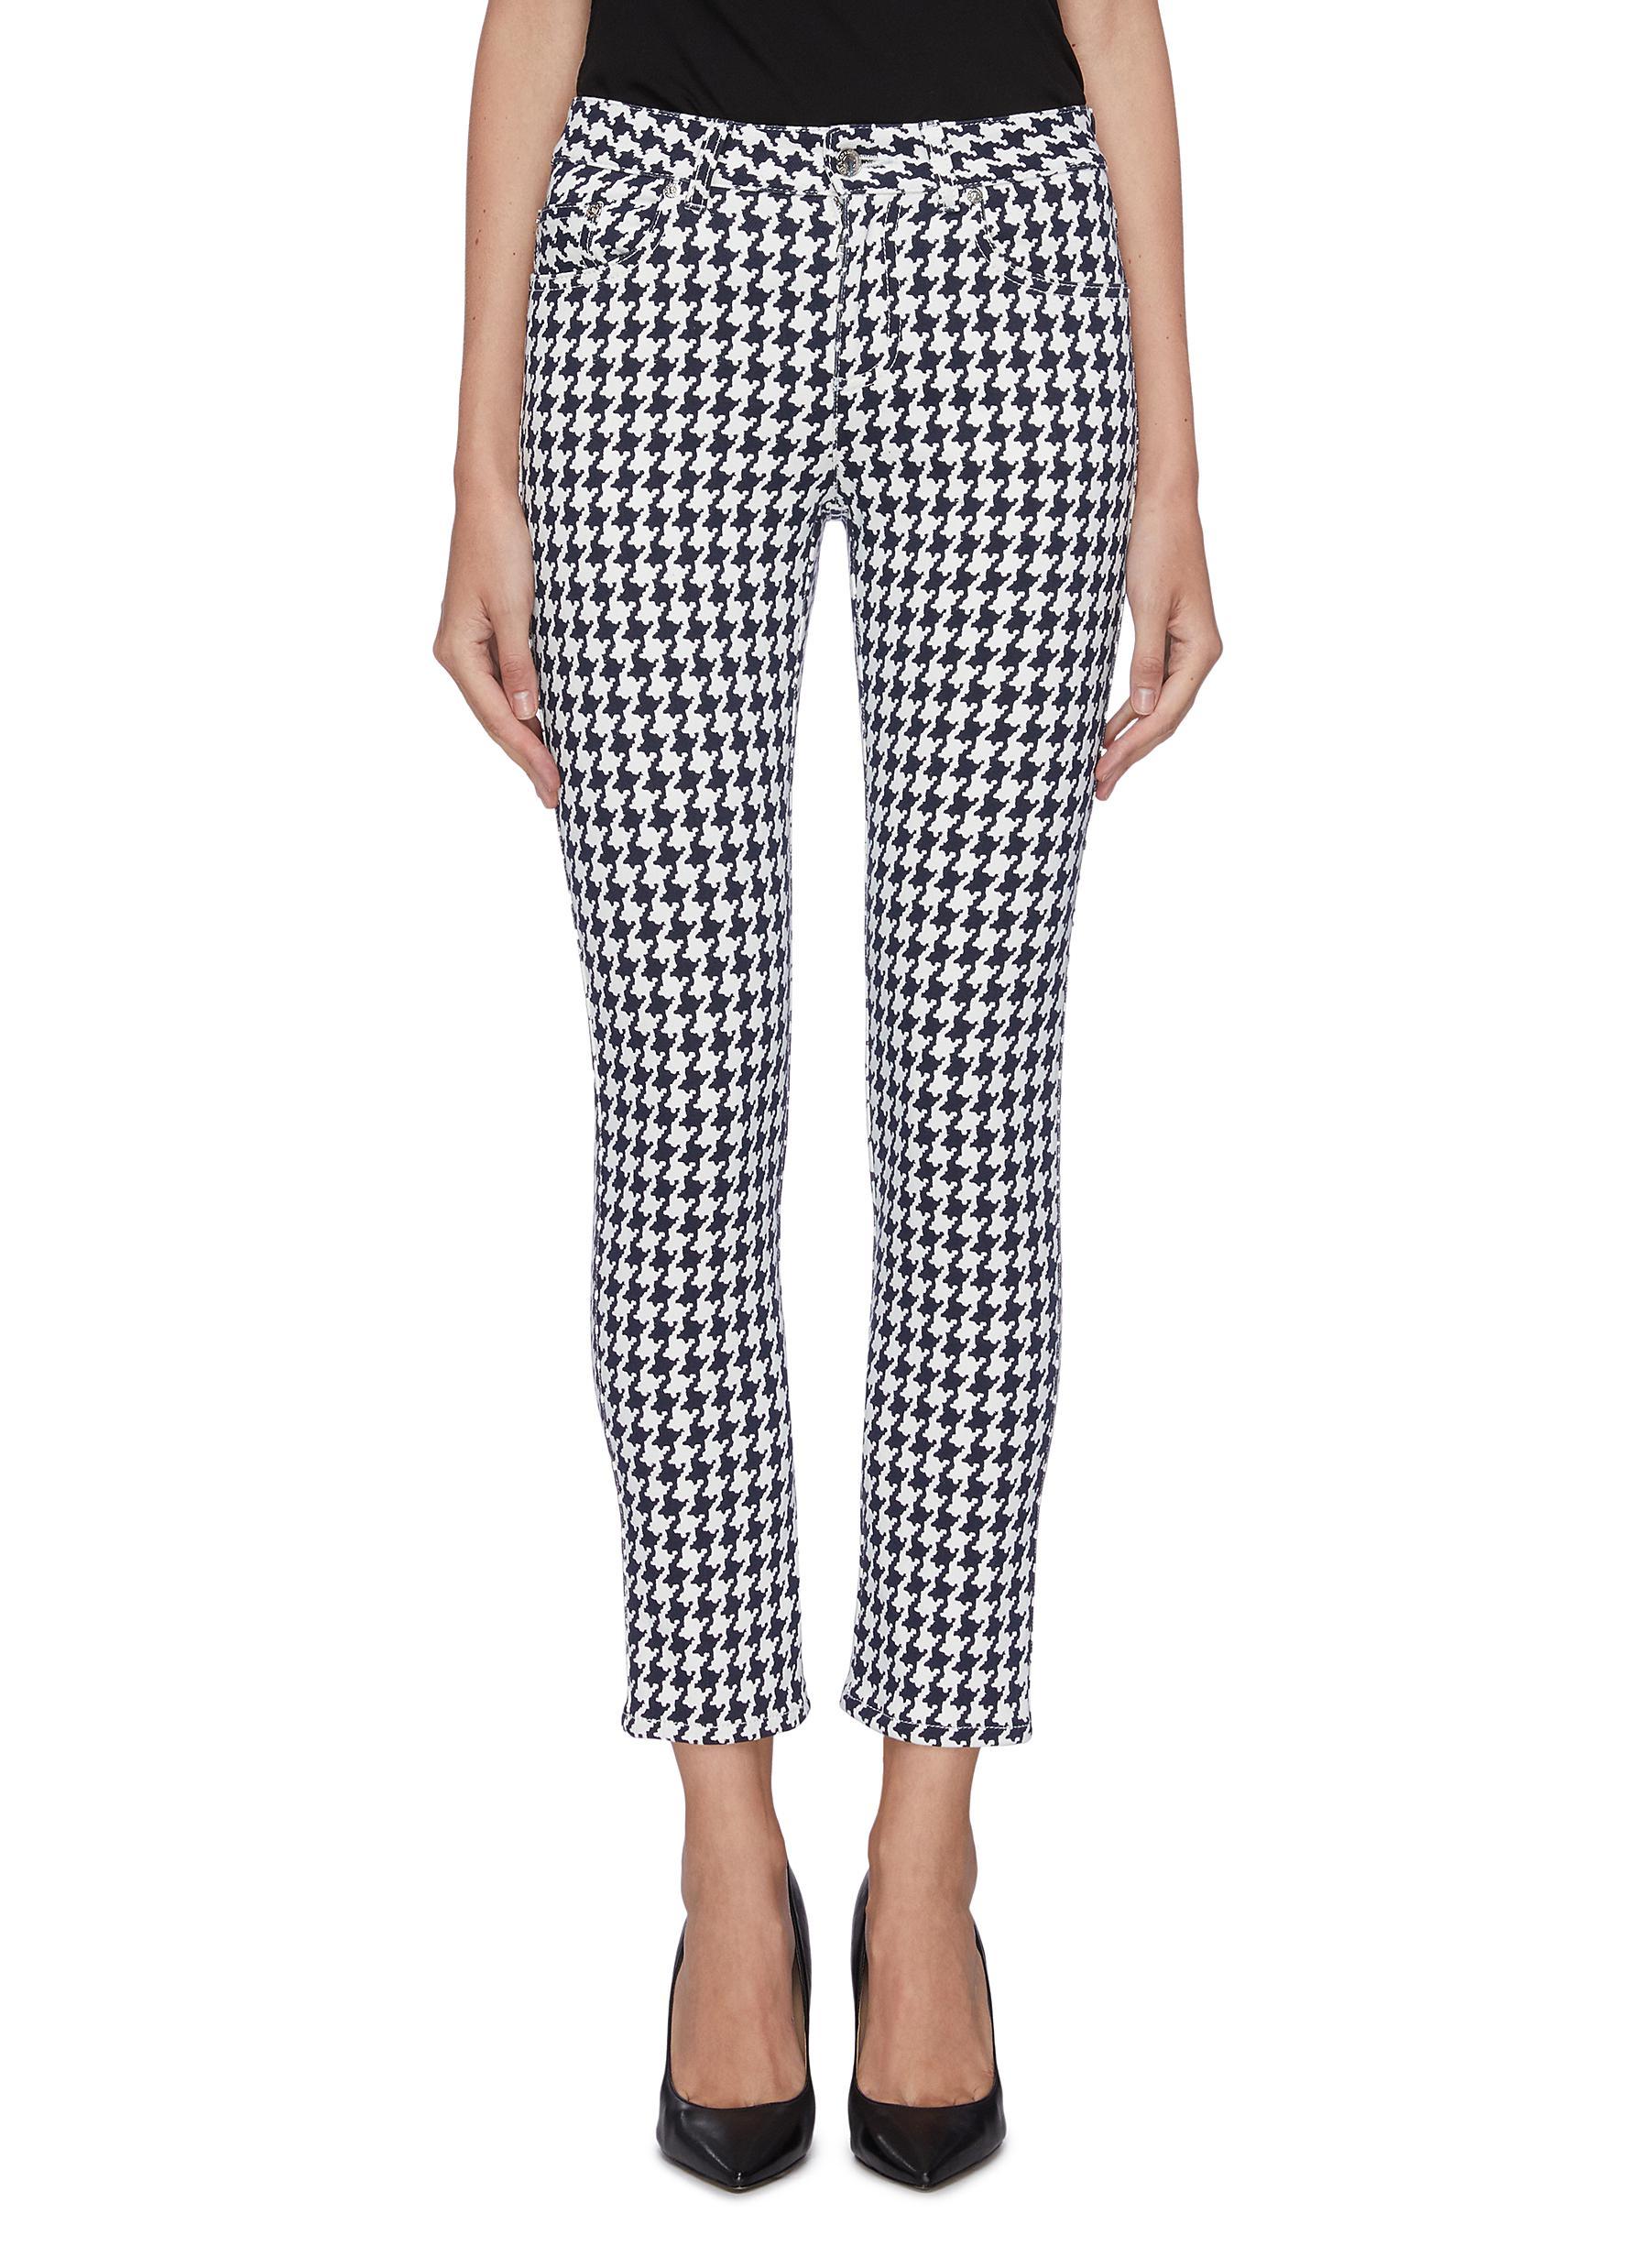 Houndstooth jacquard skinny jeans by Alexander Mcqueen